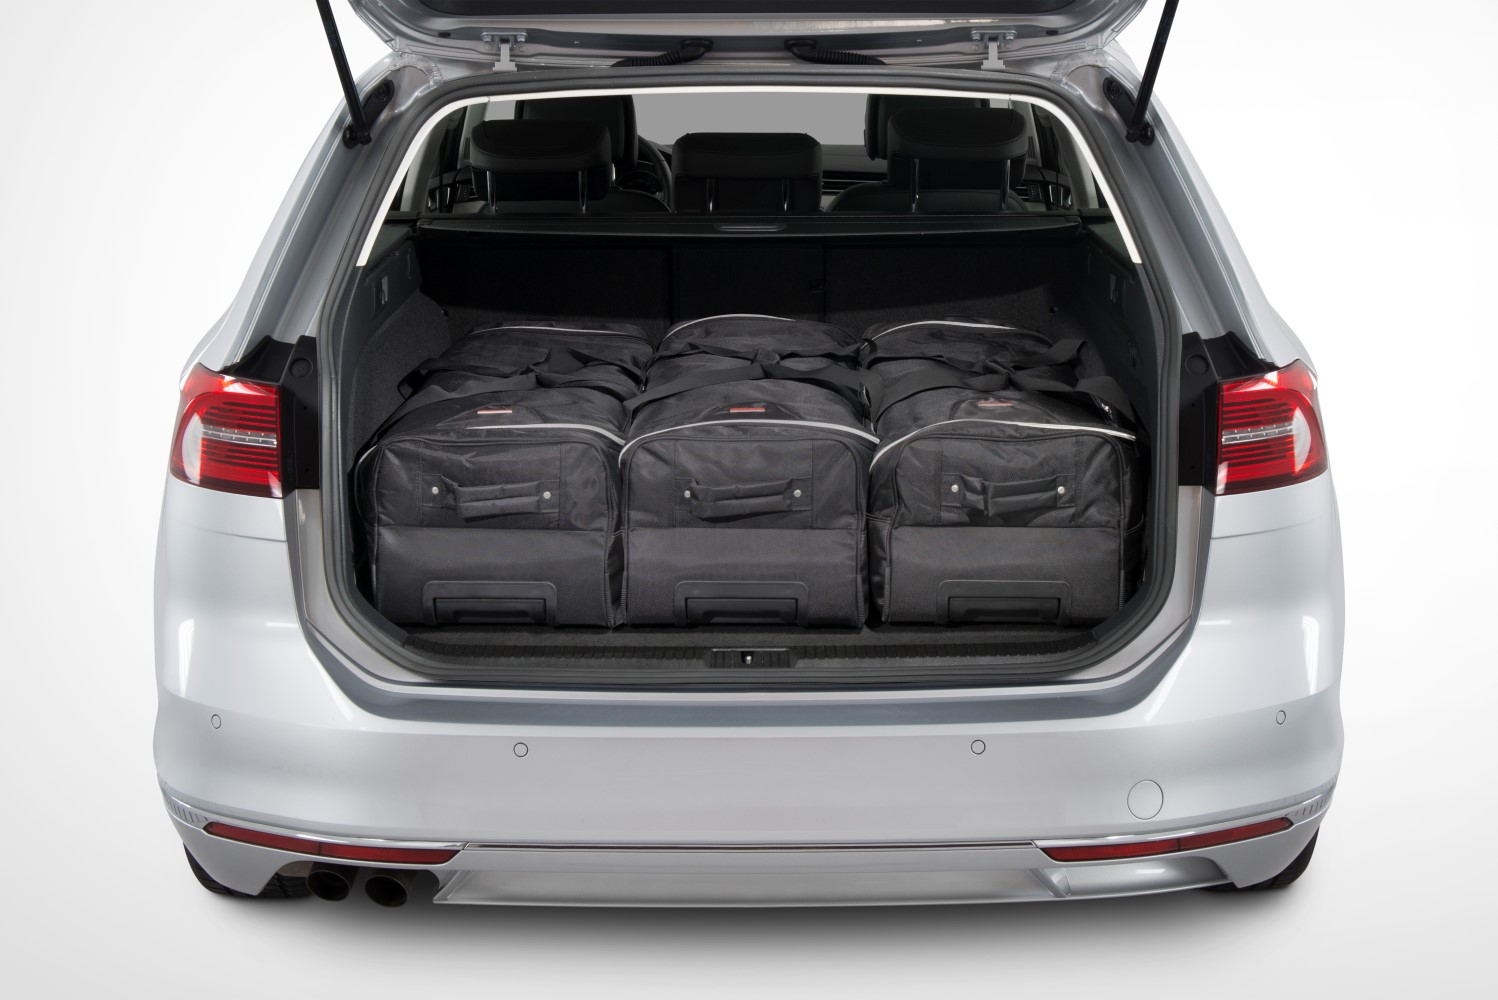 passat volkswagen passat b8 variant 2014 present car bags travel bags. Black Bedroom Furniture Sets. Home Design Ideas